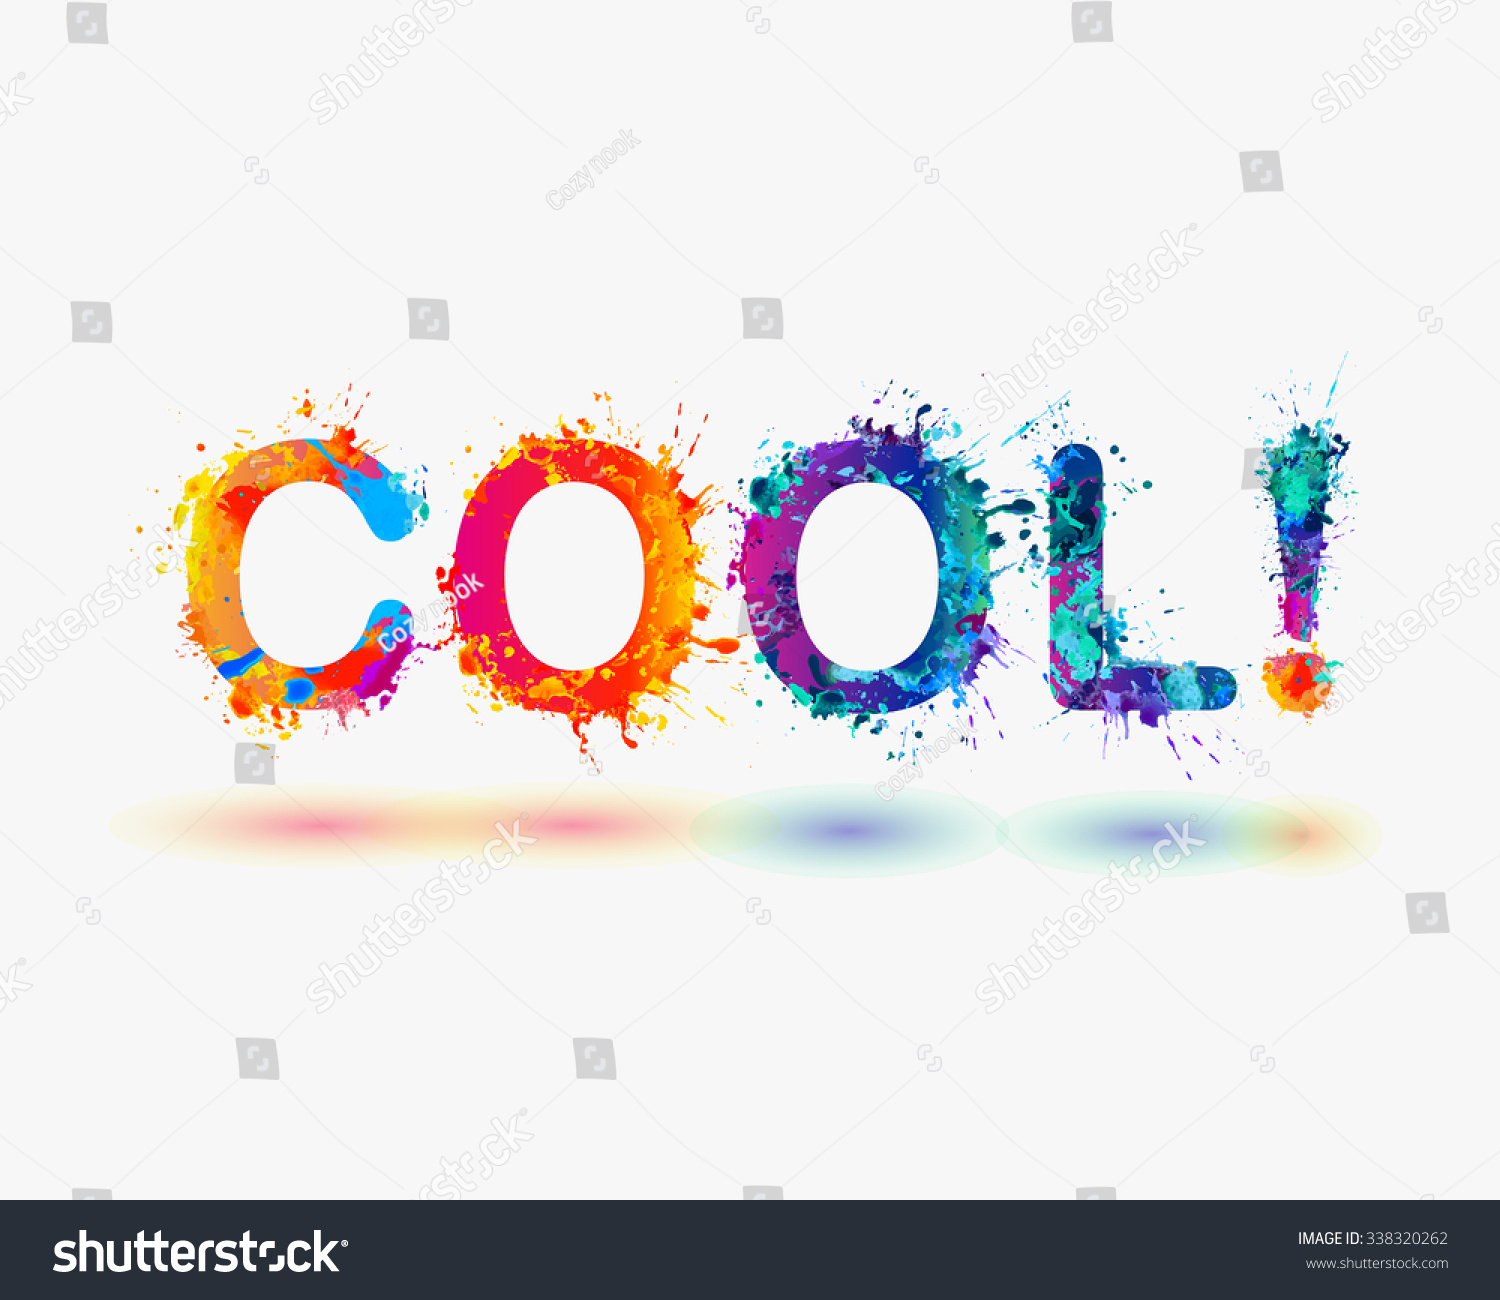 word cool rainbow splash paint stock vector royalty free 338320262